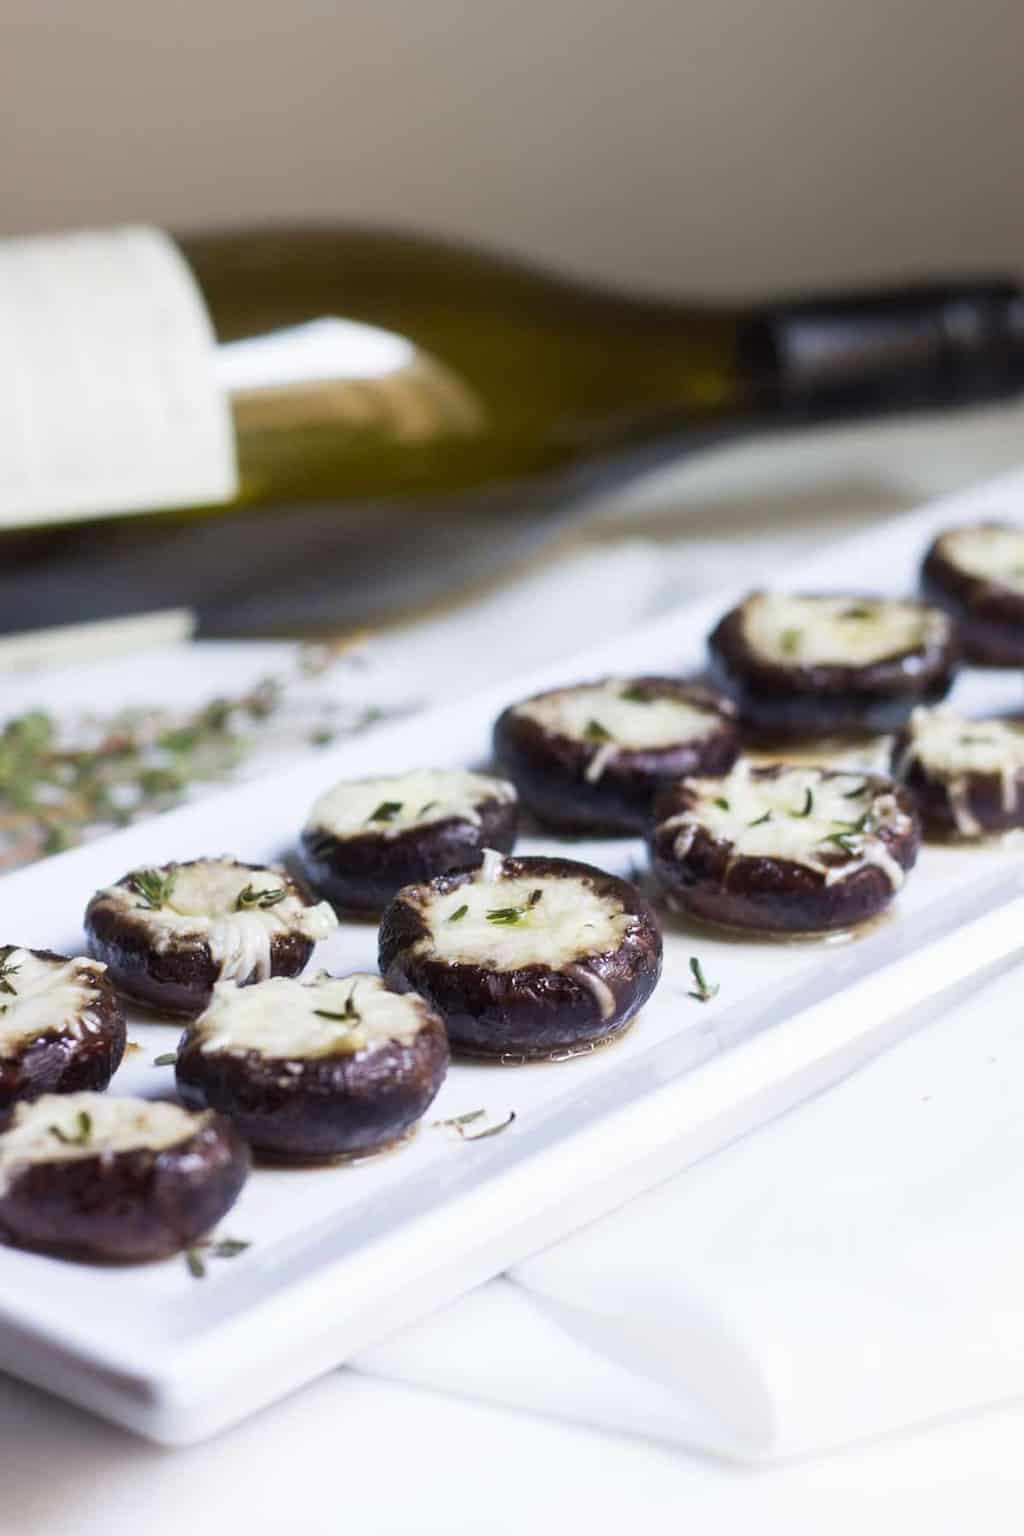 Garlic Stuffed Mushrooms: crimini mushrooms stuffed with garlic butter and parmesan cheese. Perfect appetizer or side dish! French recipe via MonPetitFour.com